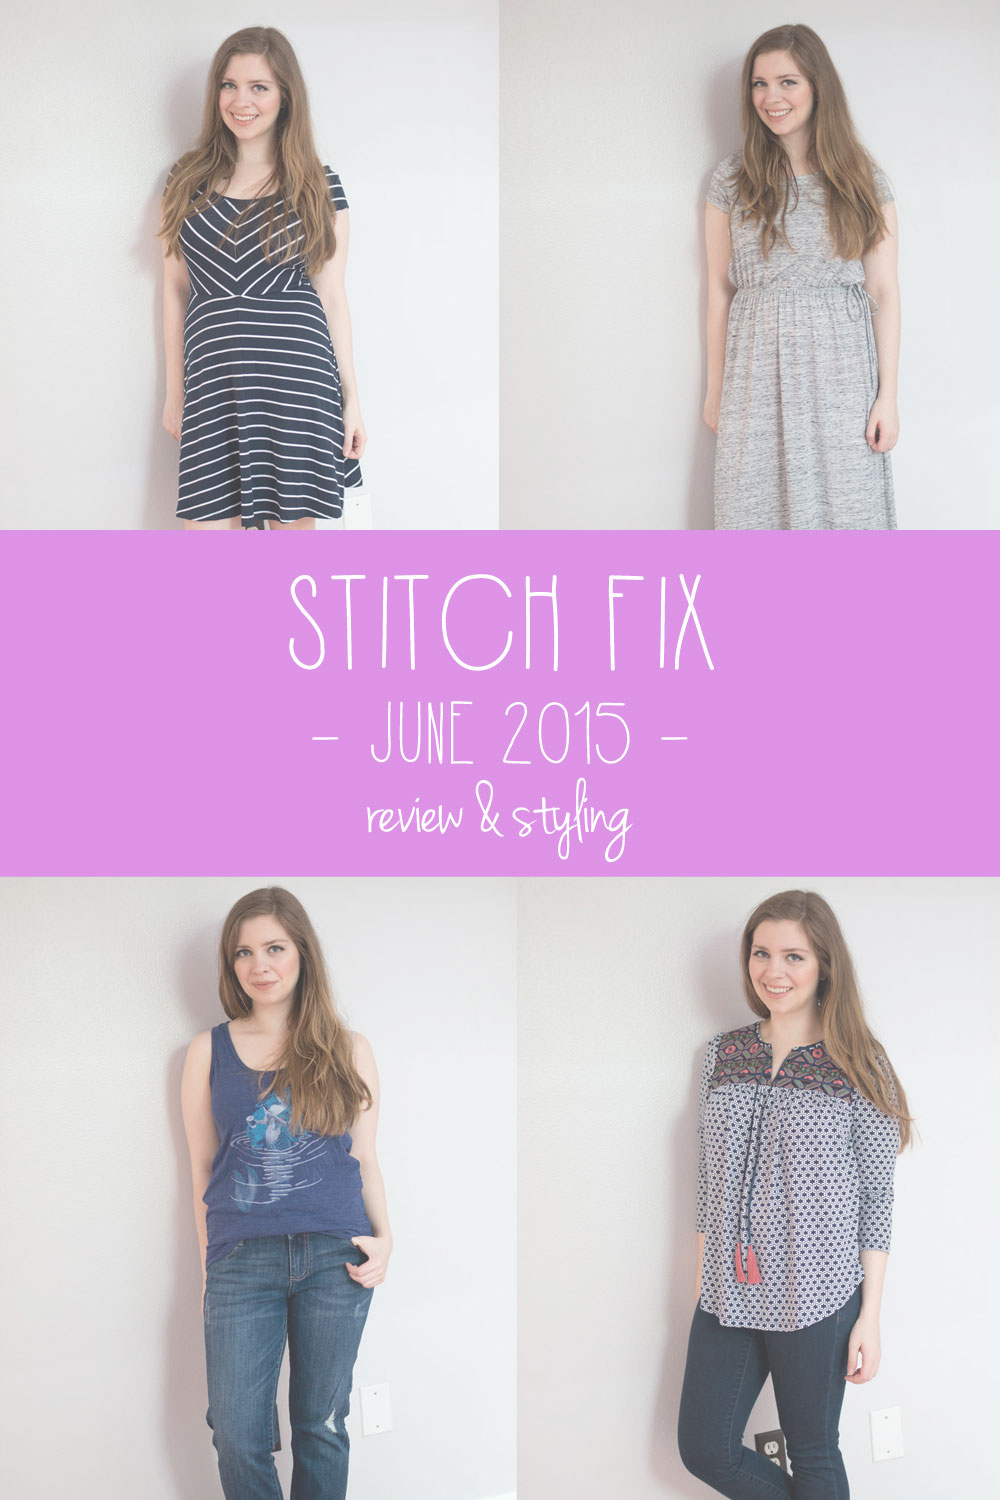 Stitch Fix June 2015 Review & Styling / hellorigby seattle fashion blog